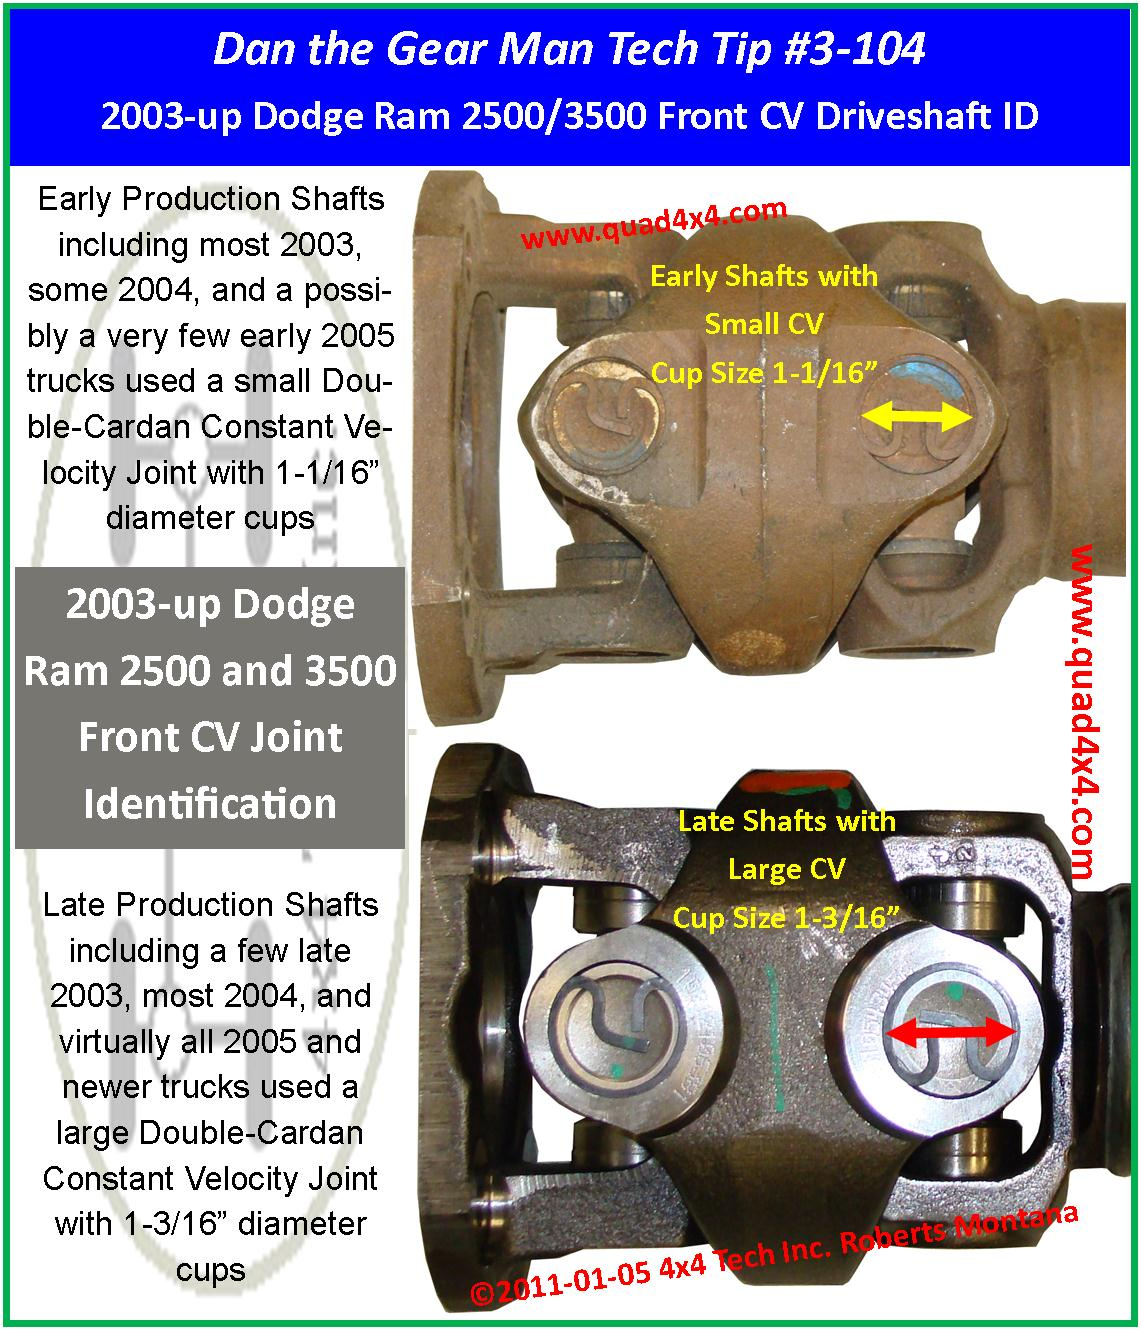 81755 additionally Greasing Entire Drive Shaft U Joints 5 Zerks Total moreover Ford Bronco 1985 Ford Bronco Front 4x4 Wheel Bearing Replace Diagram together with Nissan Frontier Drive Shaft Diagram Wiring Diagrams together with P 0900c1528007fefc. on slip yoke diagram